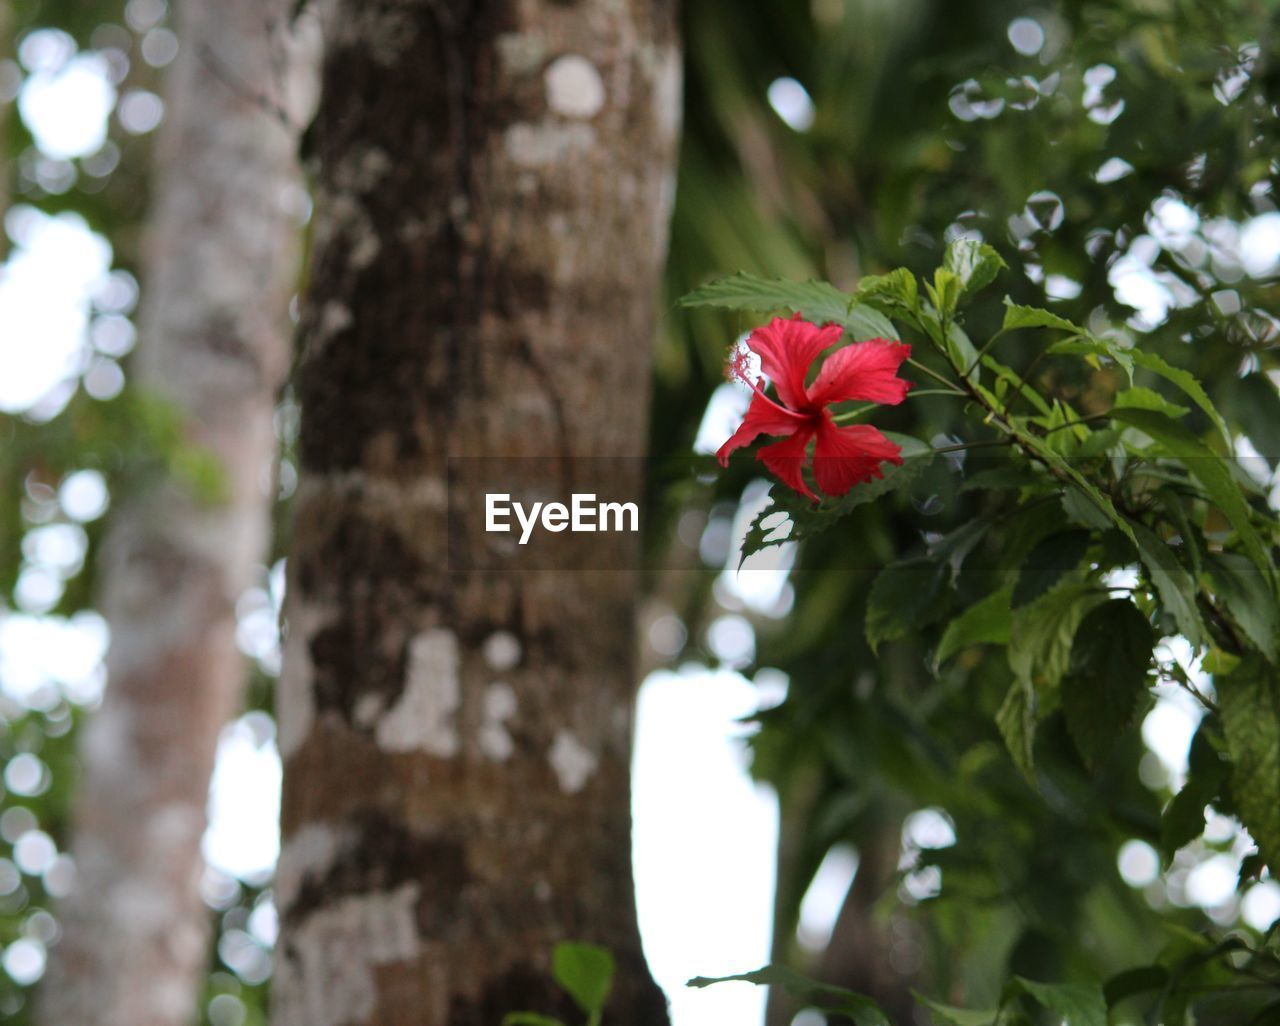 plant, flowering plant, flower, growth, tree trunk, trunk, fragility, vulnerability, beauty in nature, freshness, nature, focus on foreground, tree, day, low angle view, close-up, no people, petal, flower head, outdoors